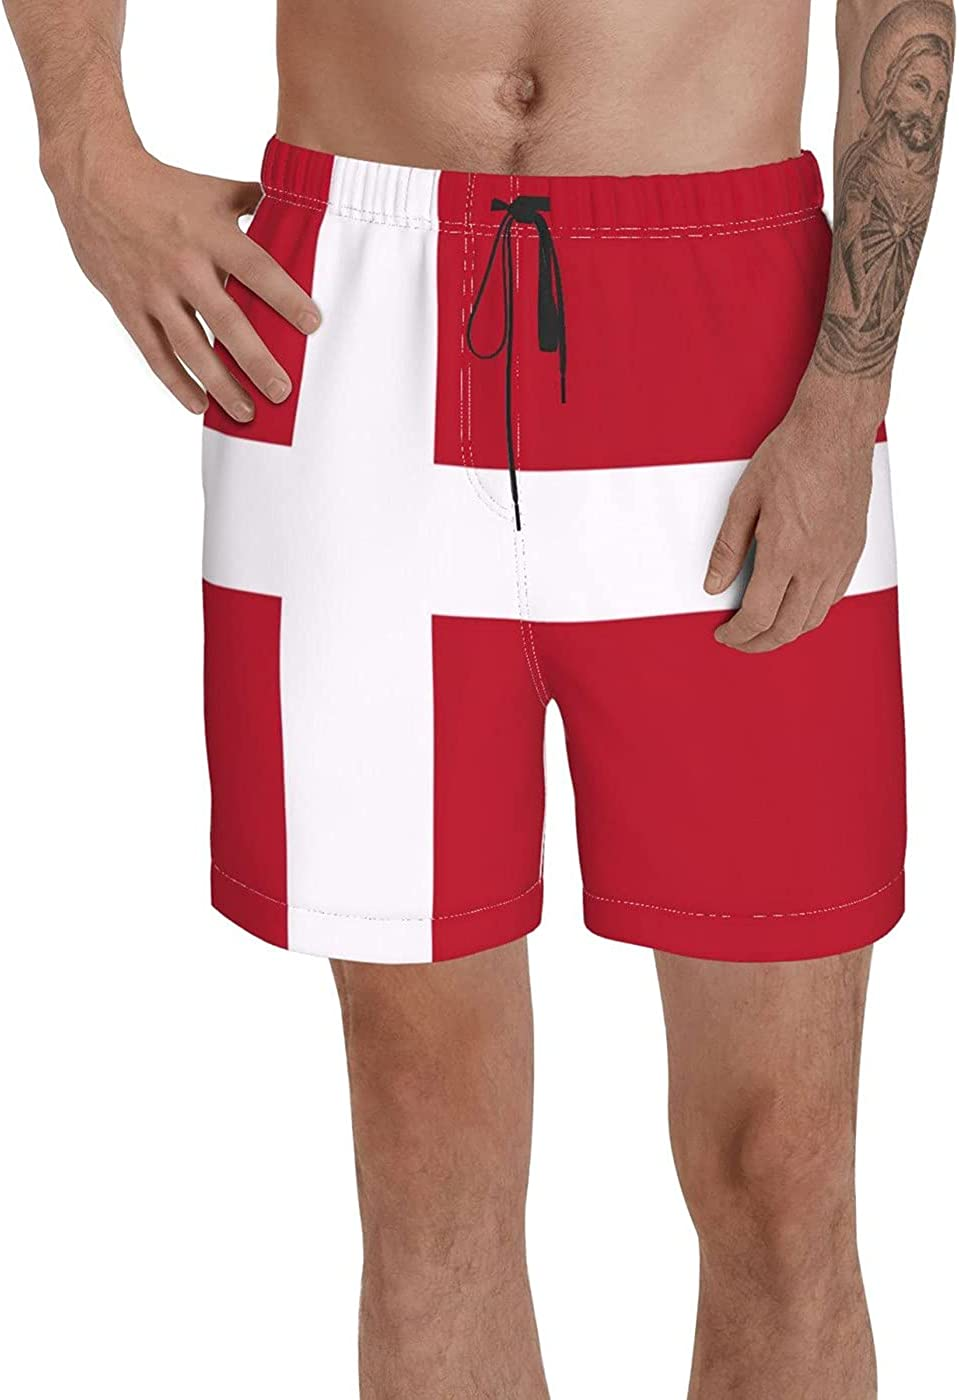 Count Denmark Flag Men's 3D Printed Funny Summer Quick Dry Swim Short Board Shorts with